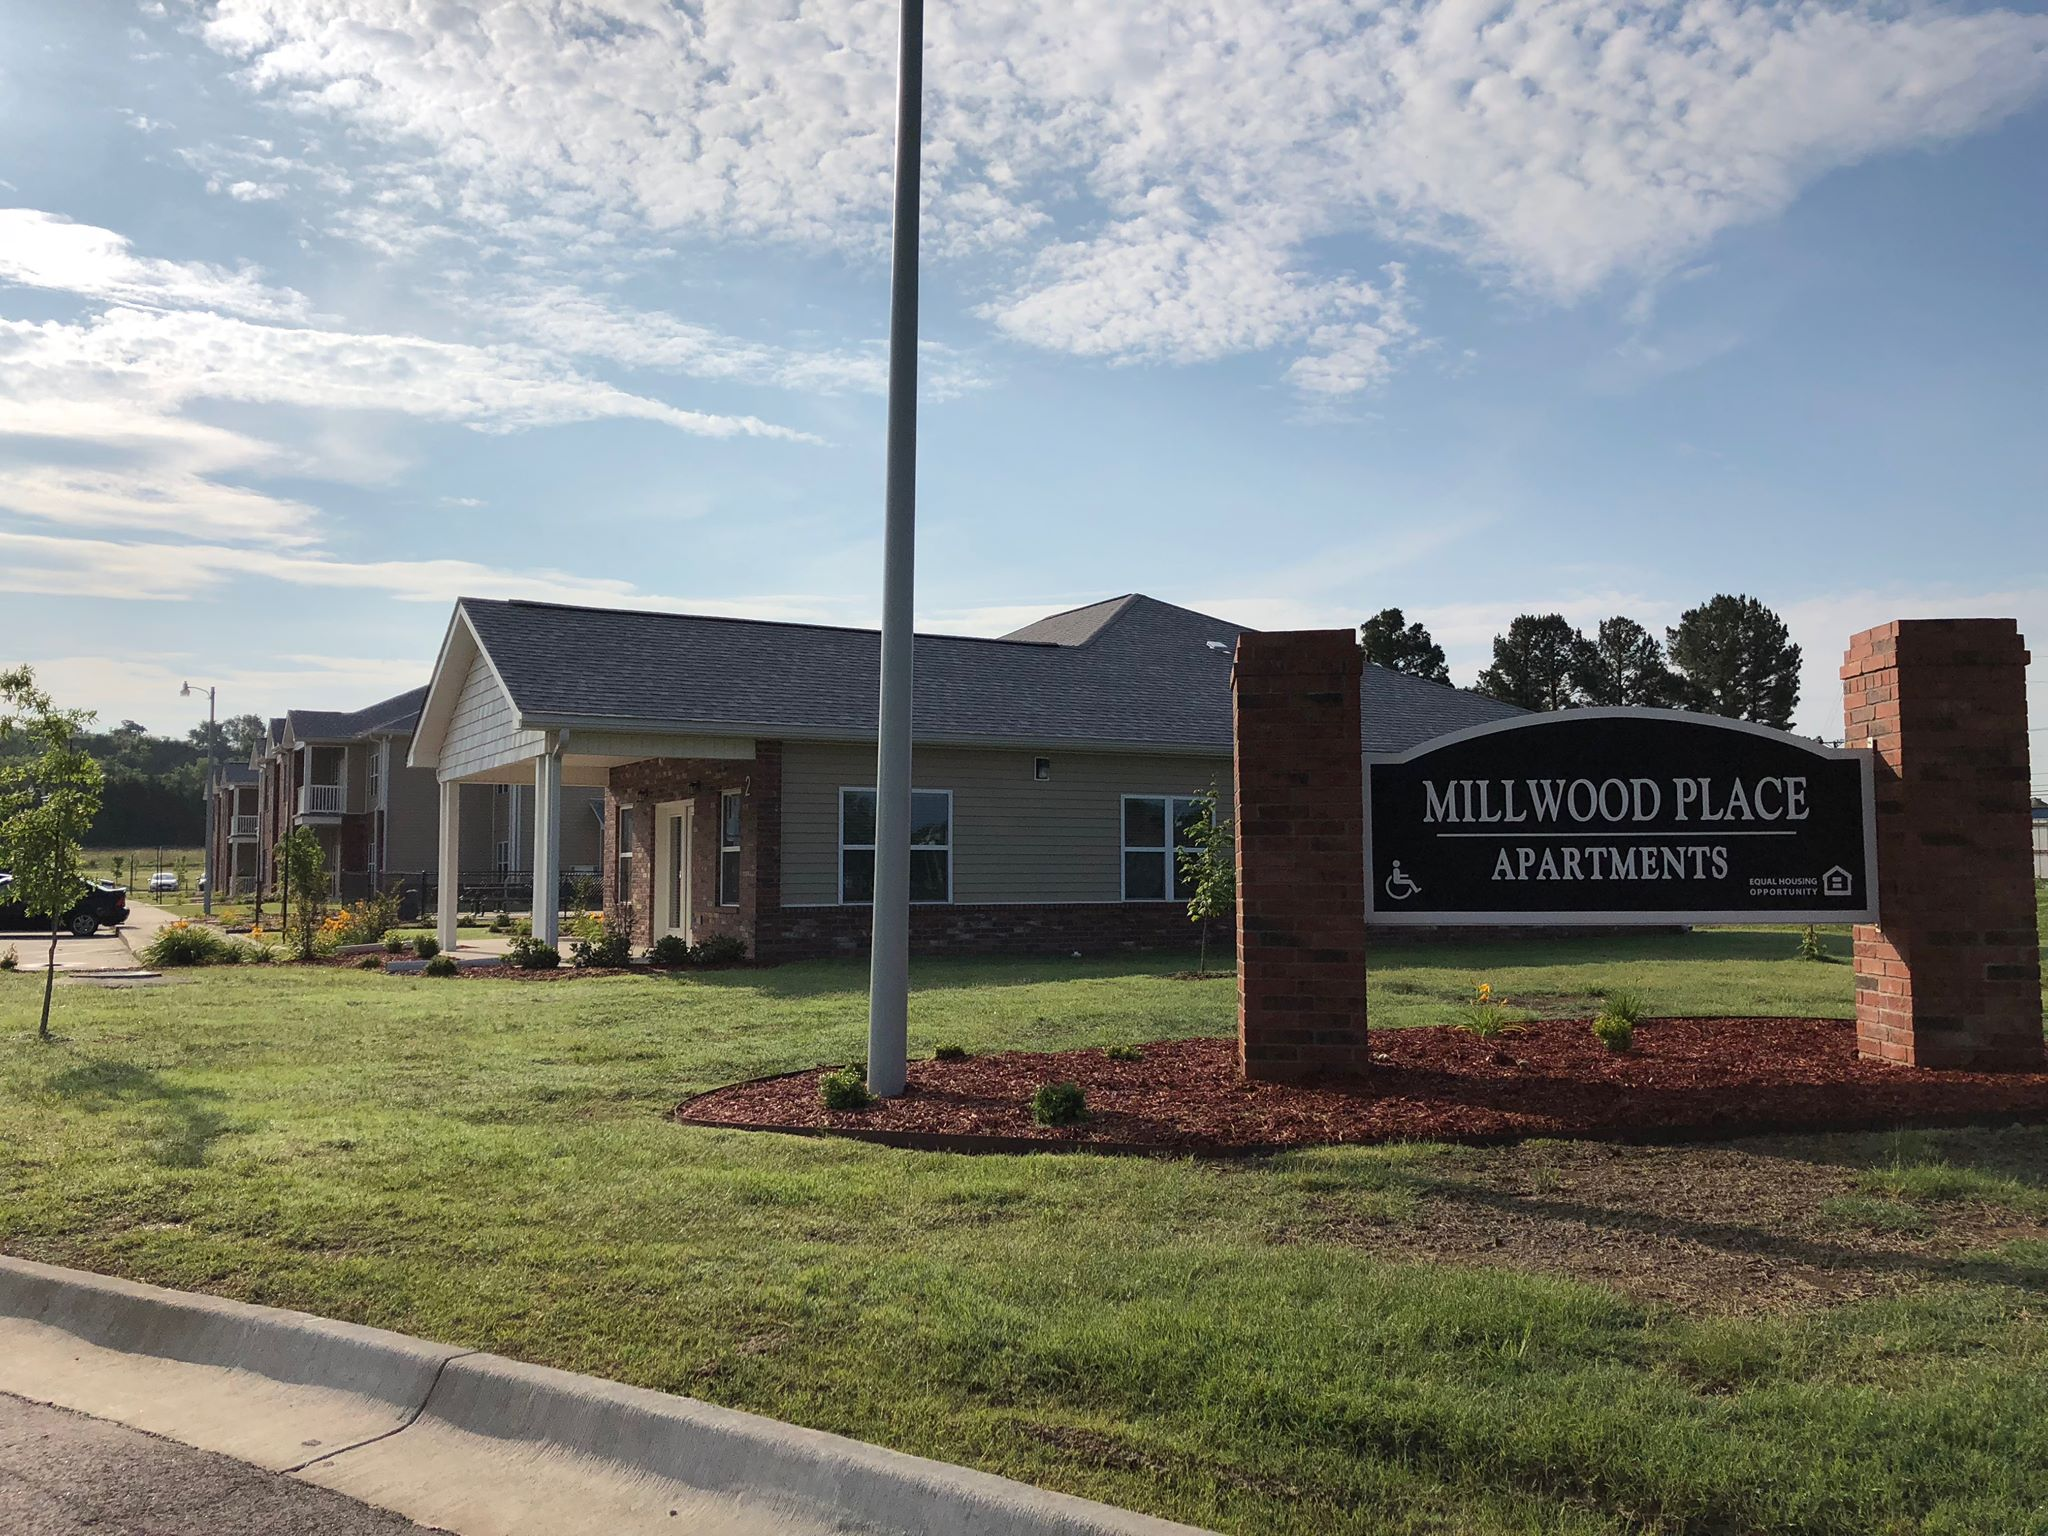 Image of Millwood Place Apartments in Clarksville, Arkansas